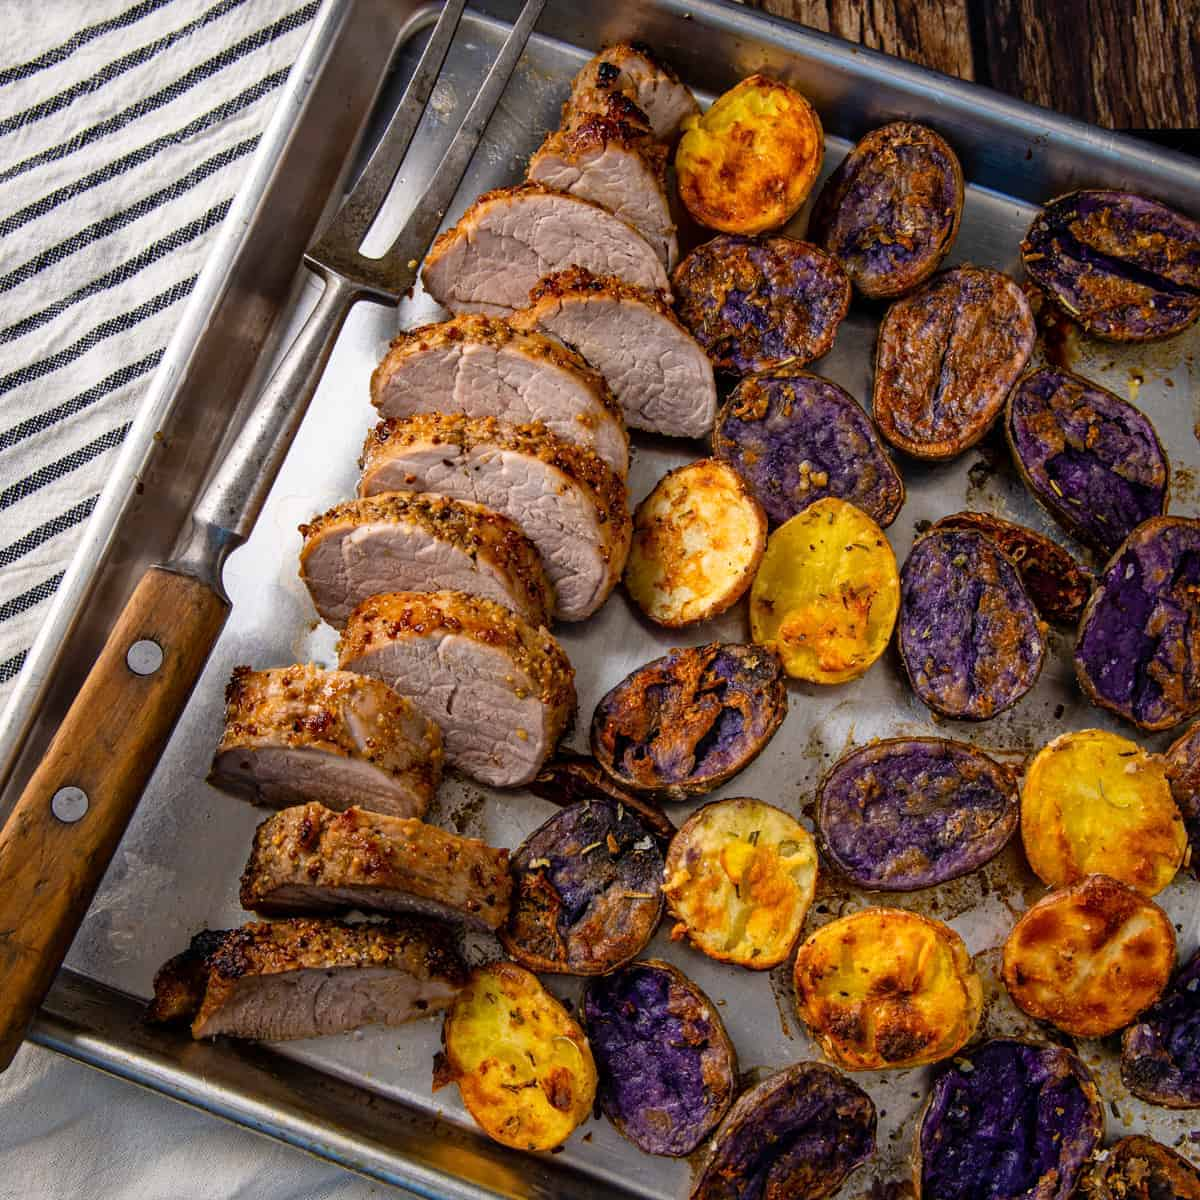 Overhead image of a sheet pan with sliced pork tenderloin and roasted parmesan potatoes.